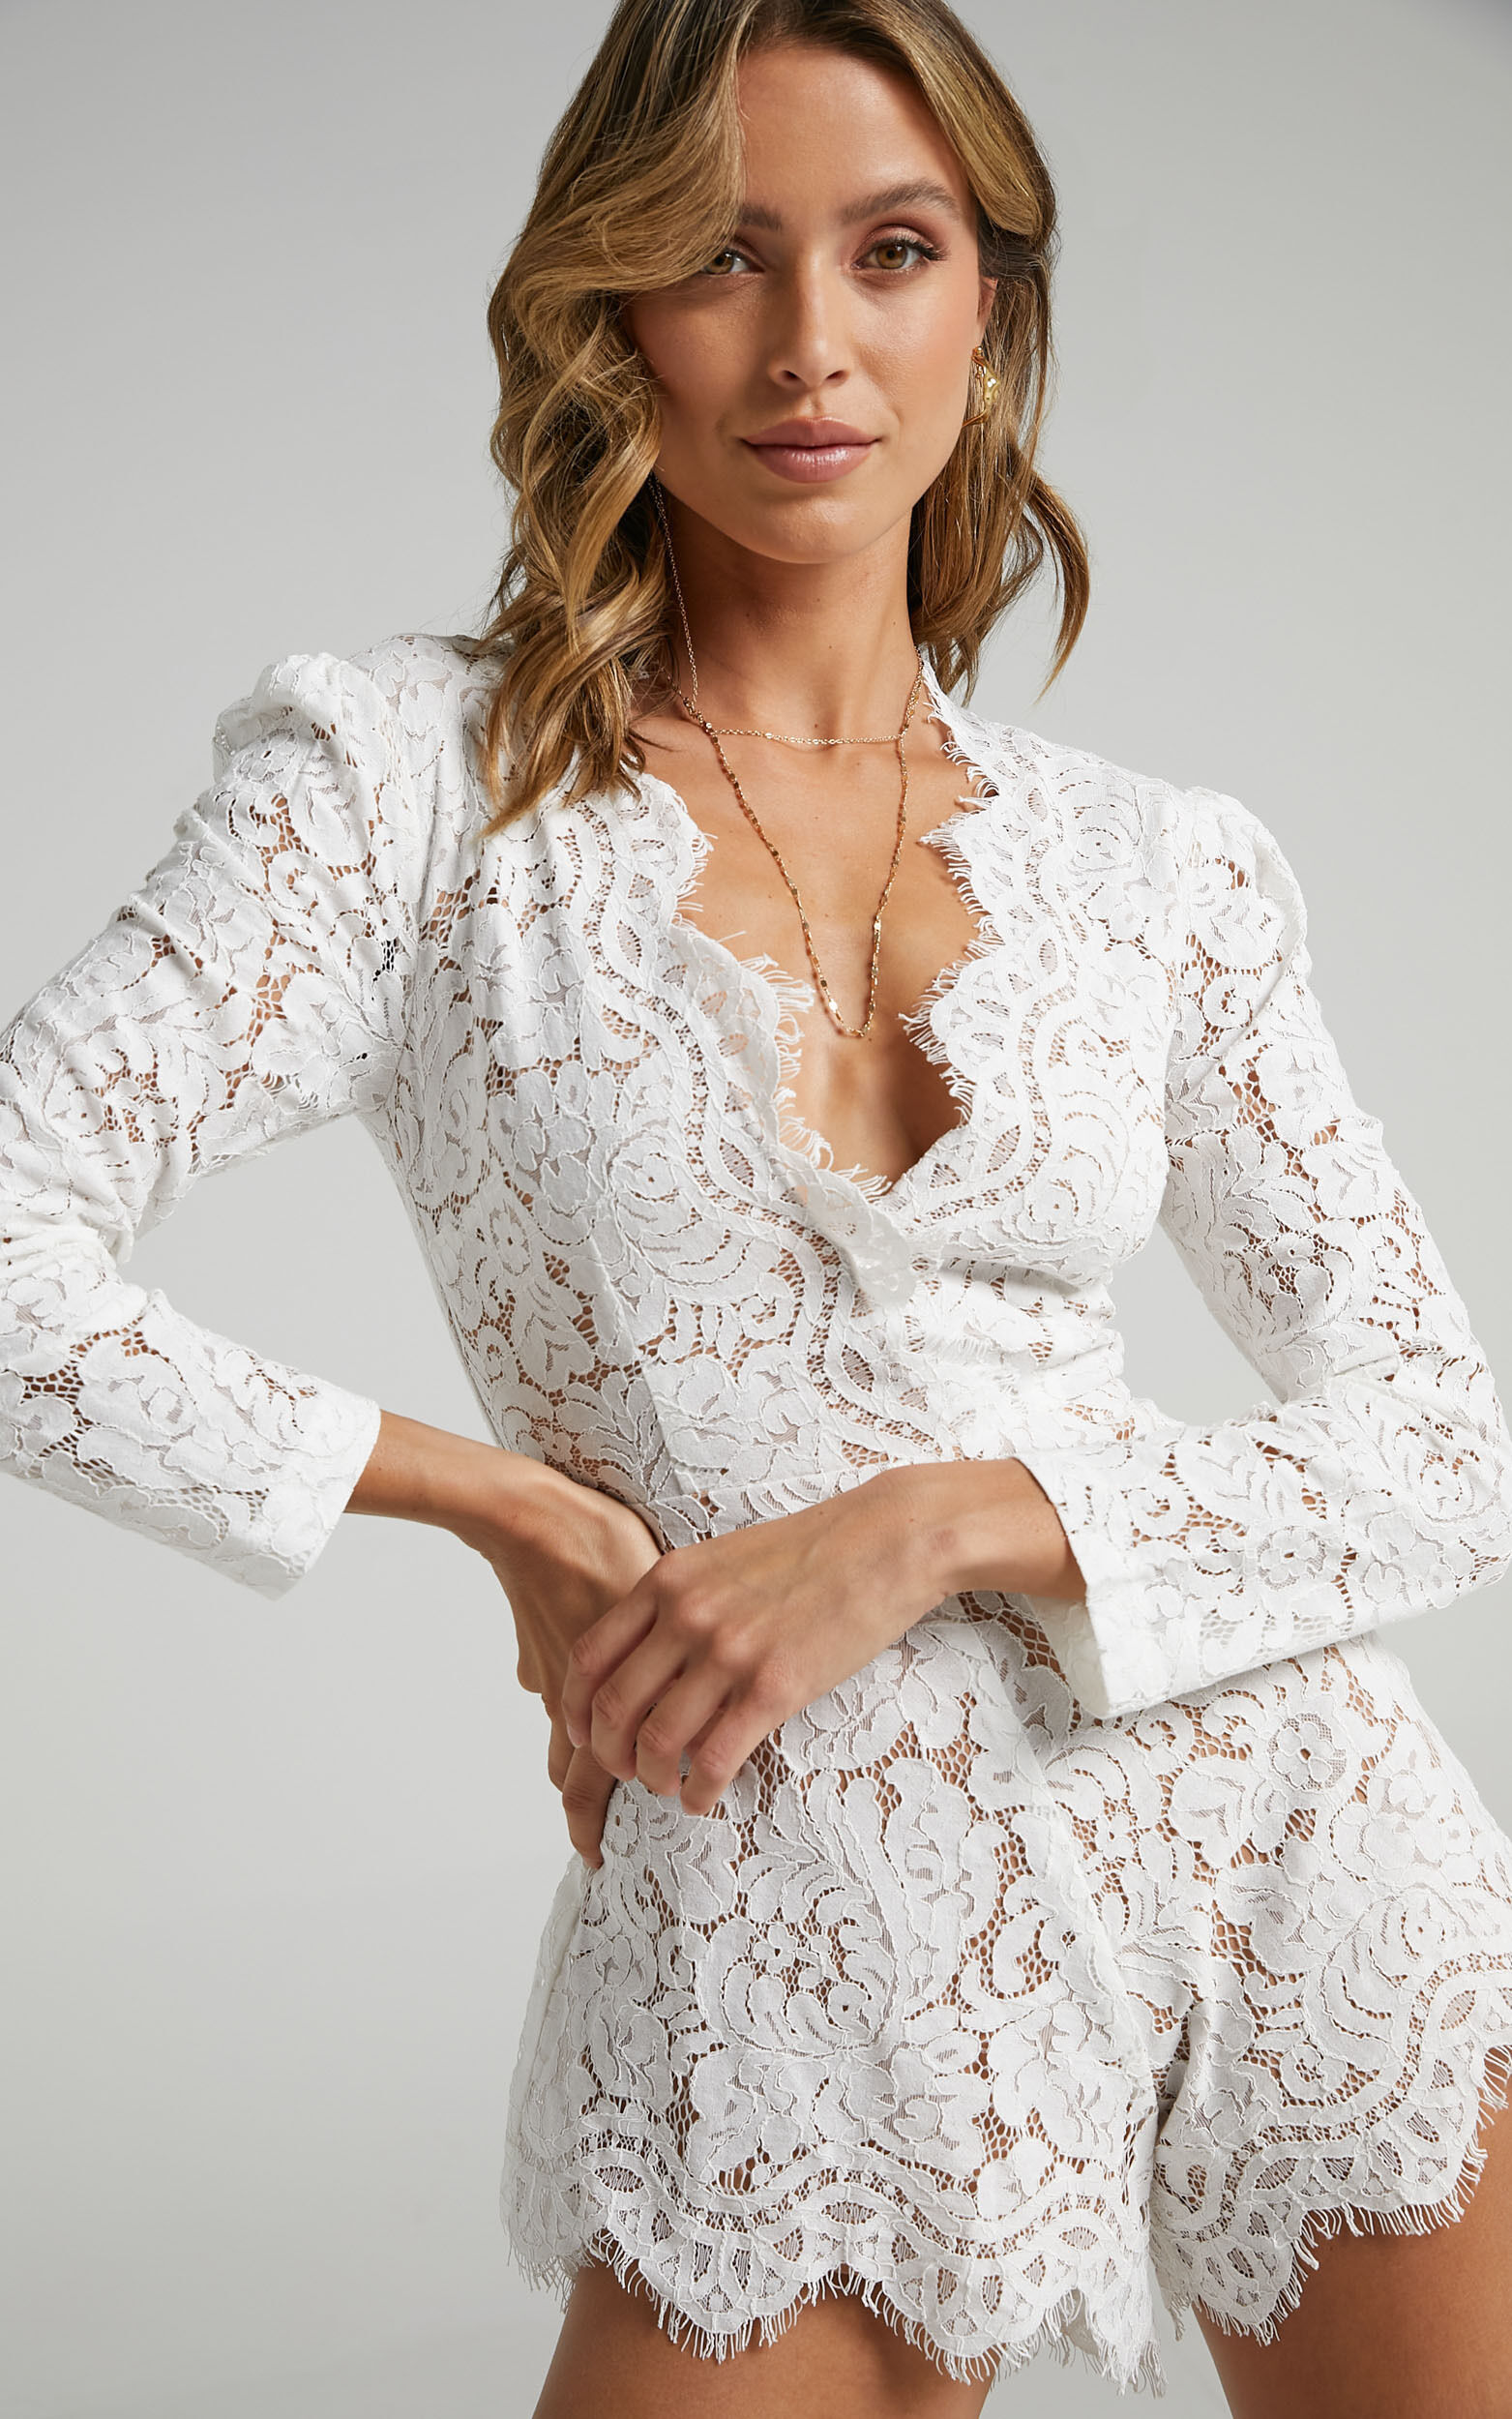 Felt Good Playsuit in White Lace - 20, WHT3, super-hi-res image number null